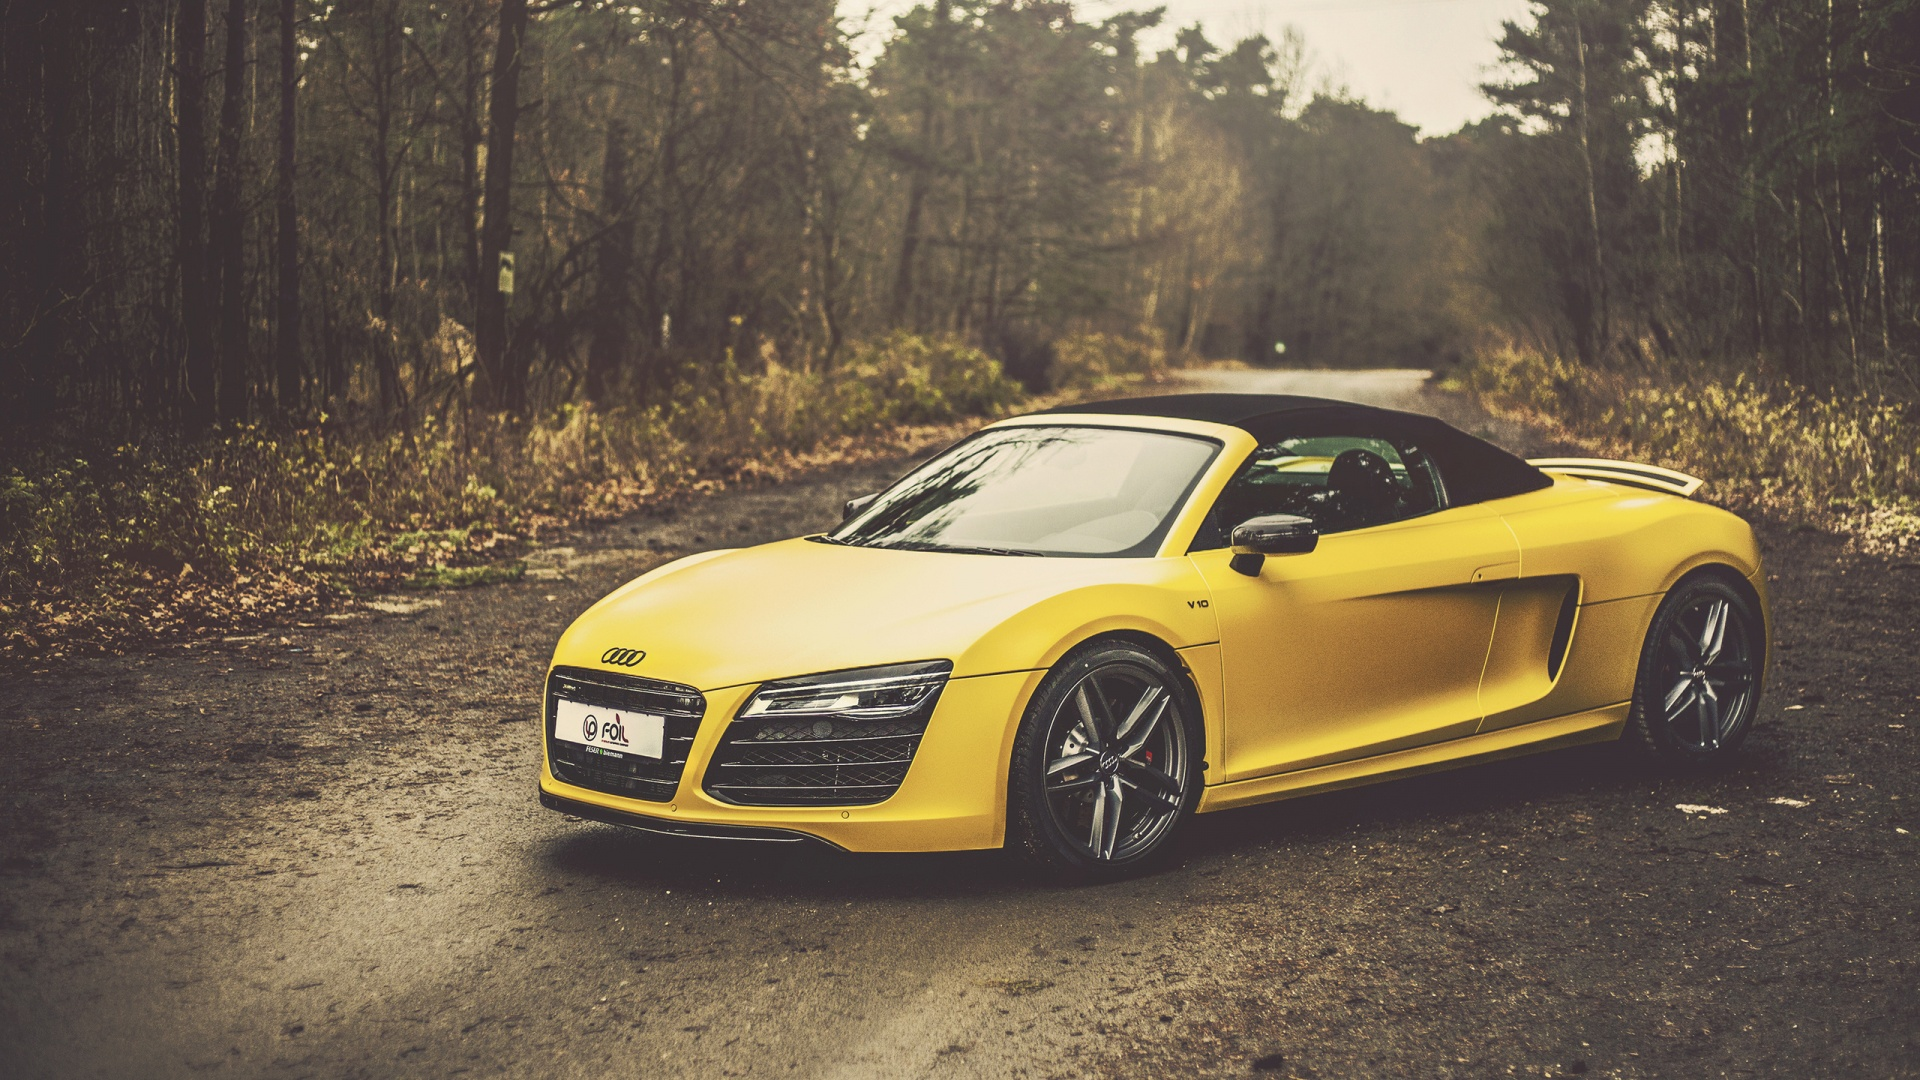 Yellow Audi R8 V10 Spyder Wallpapers   1920x1080   853664 1920x1080